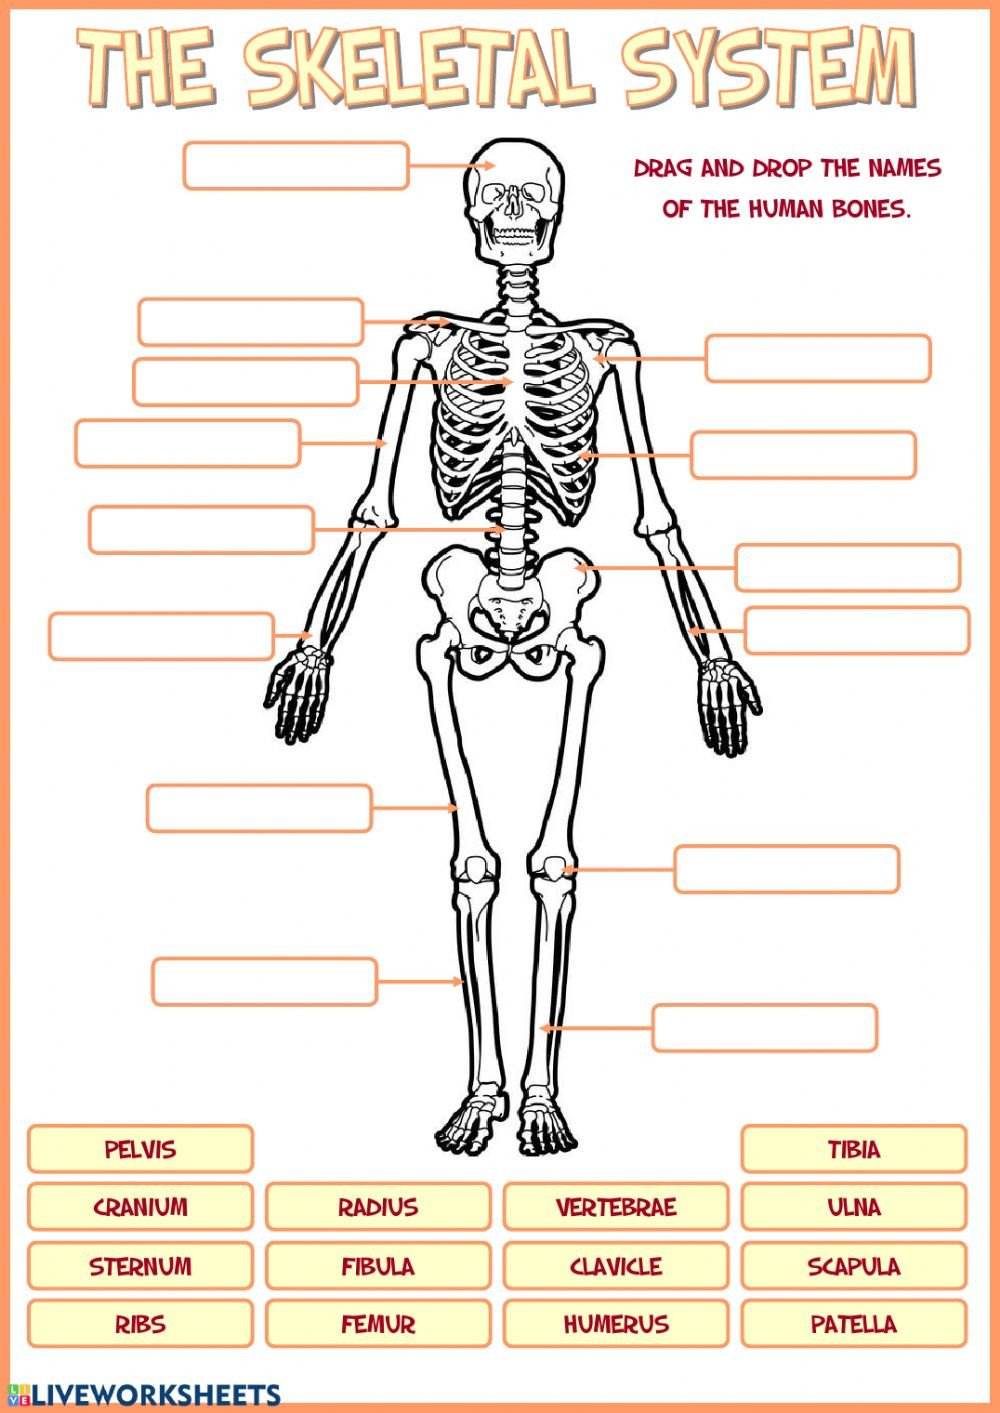 Blank Skeletal System Worksheet Skeletal System Interactive Worksheet Skeleton Bone Names